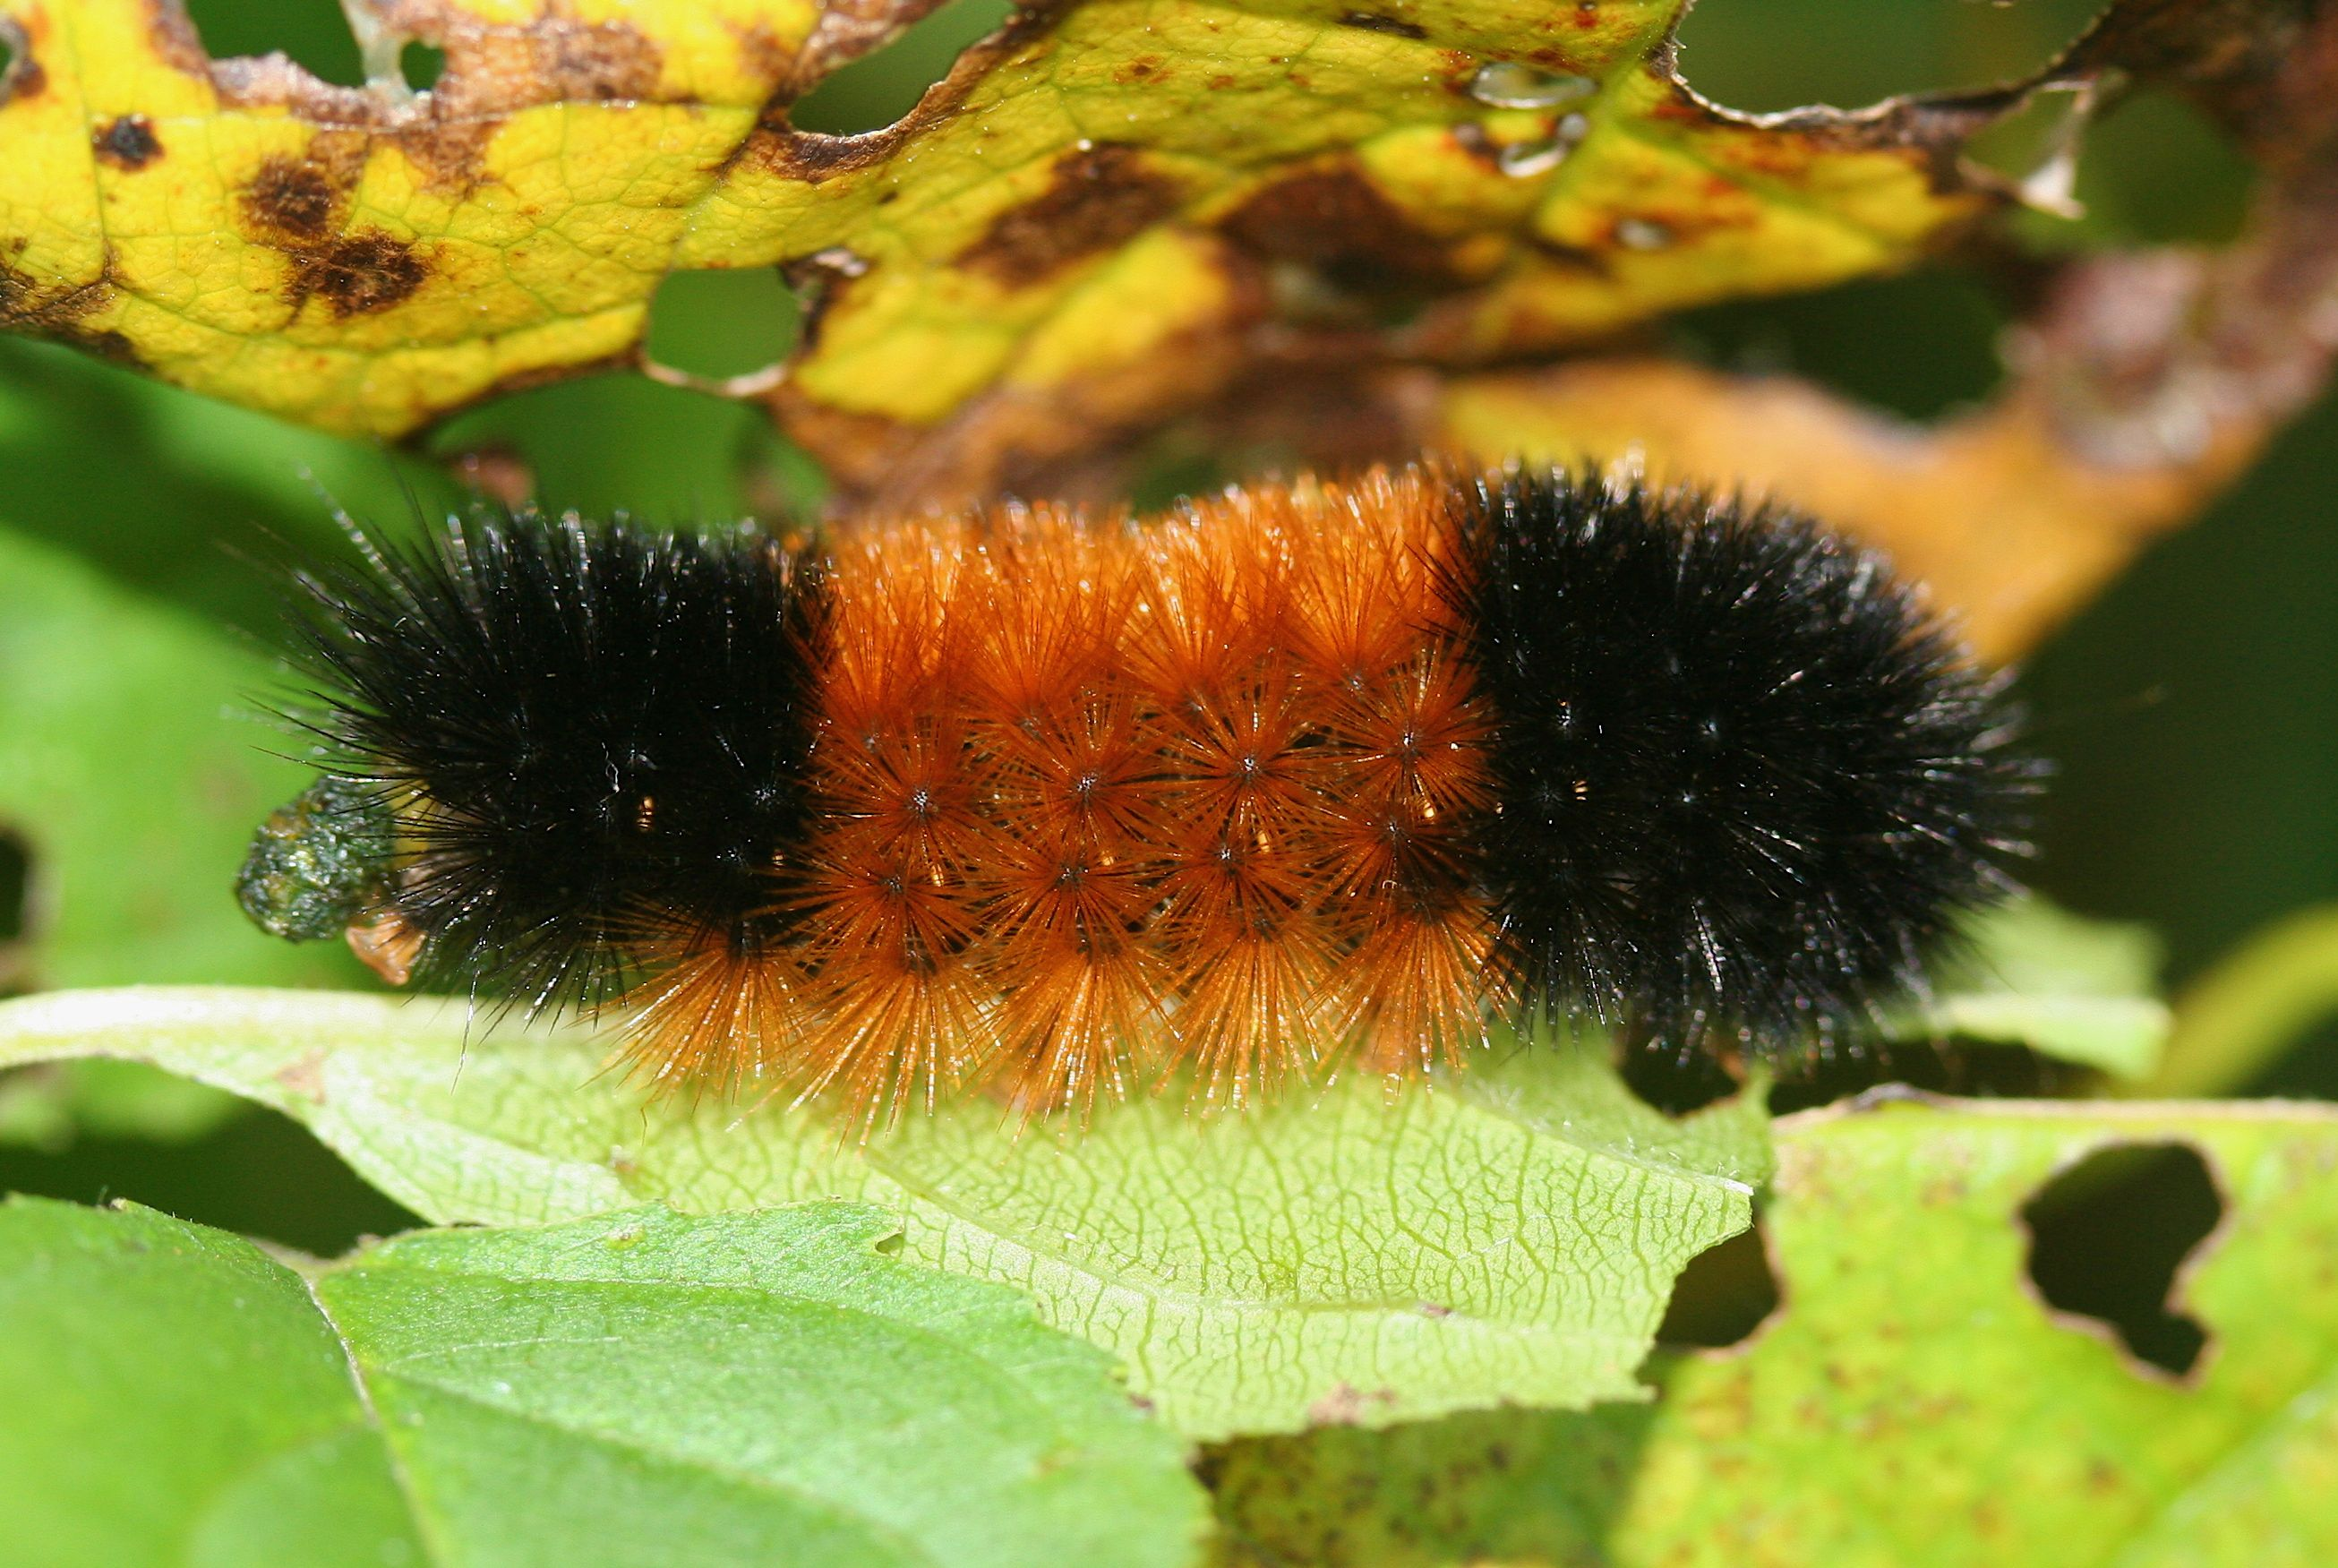 Wooly Bear Caterpillar Wooly Bear Caterpillar The Wooly Fuzzy Caterpillar